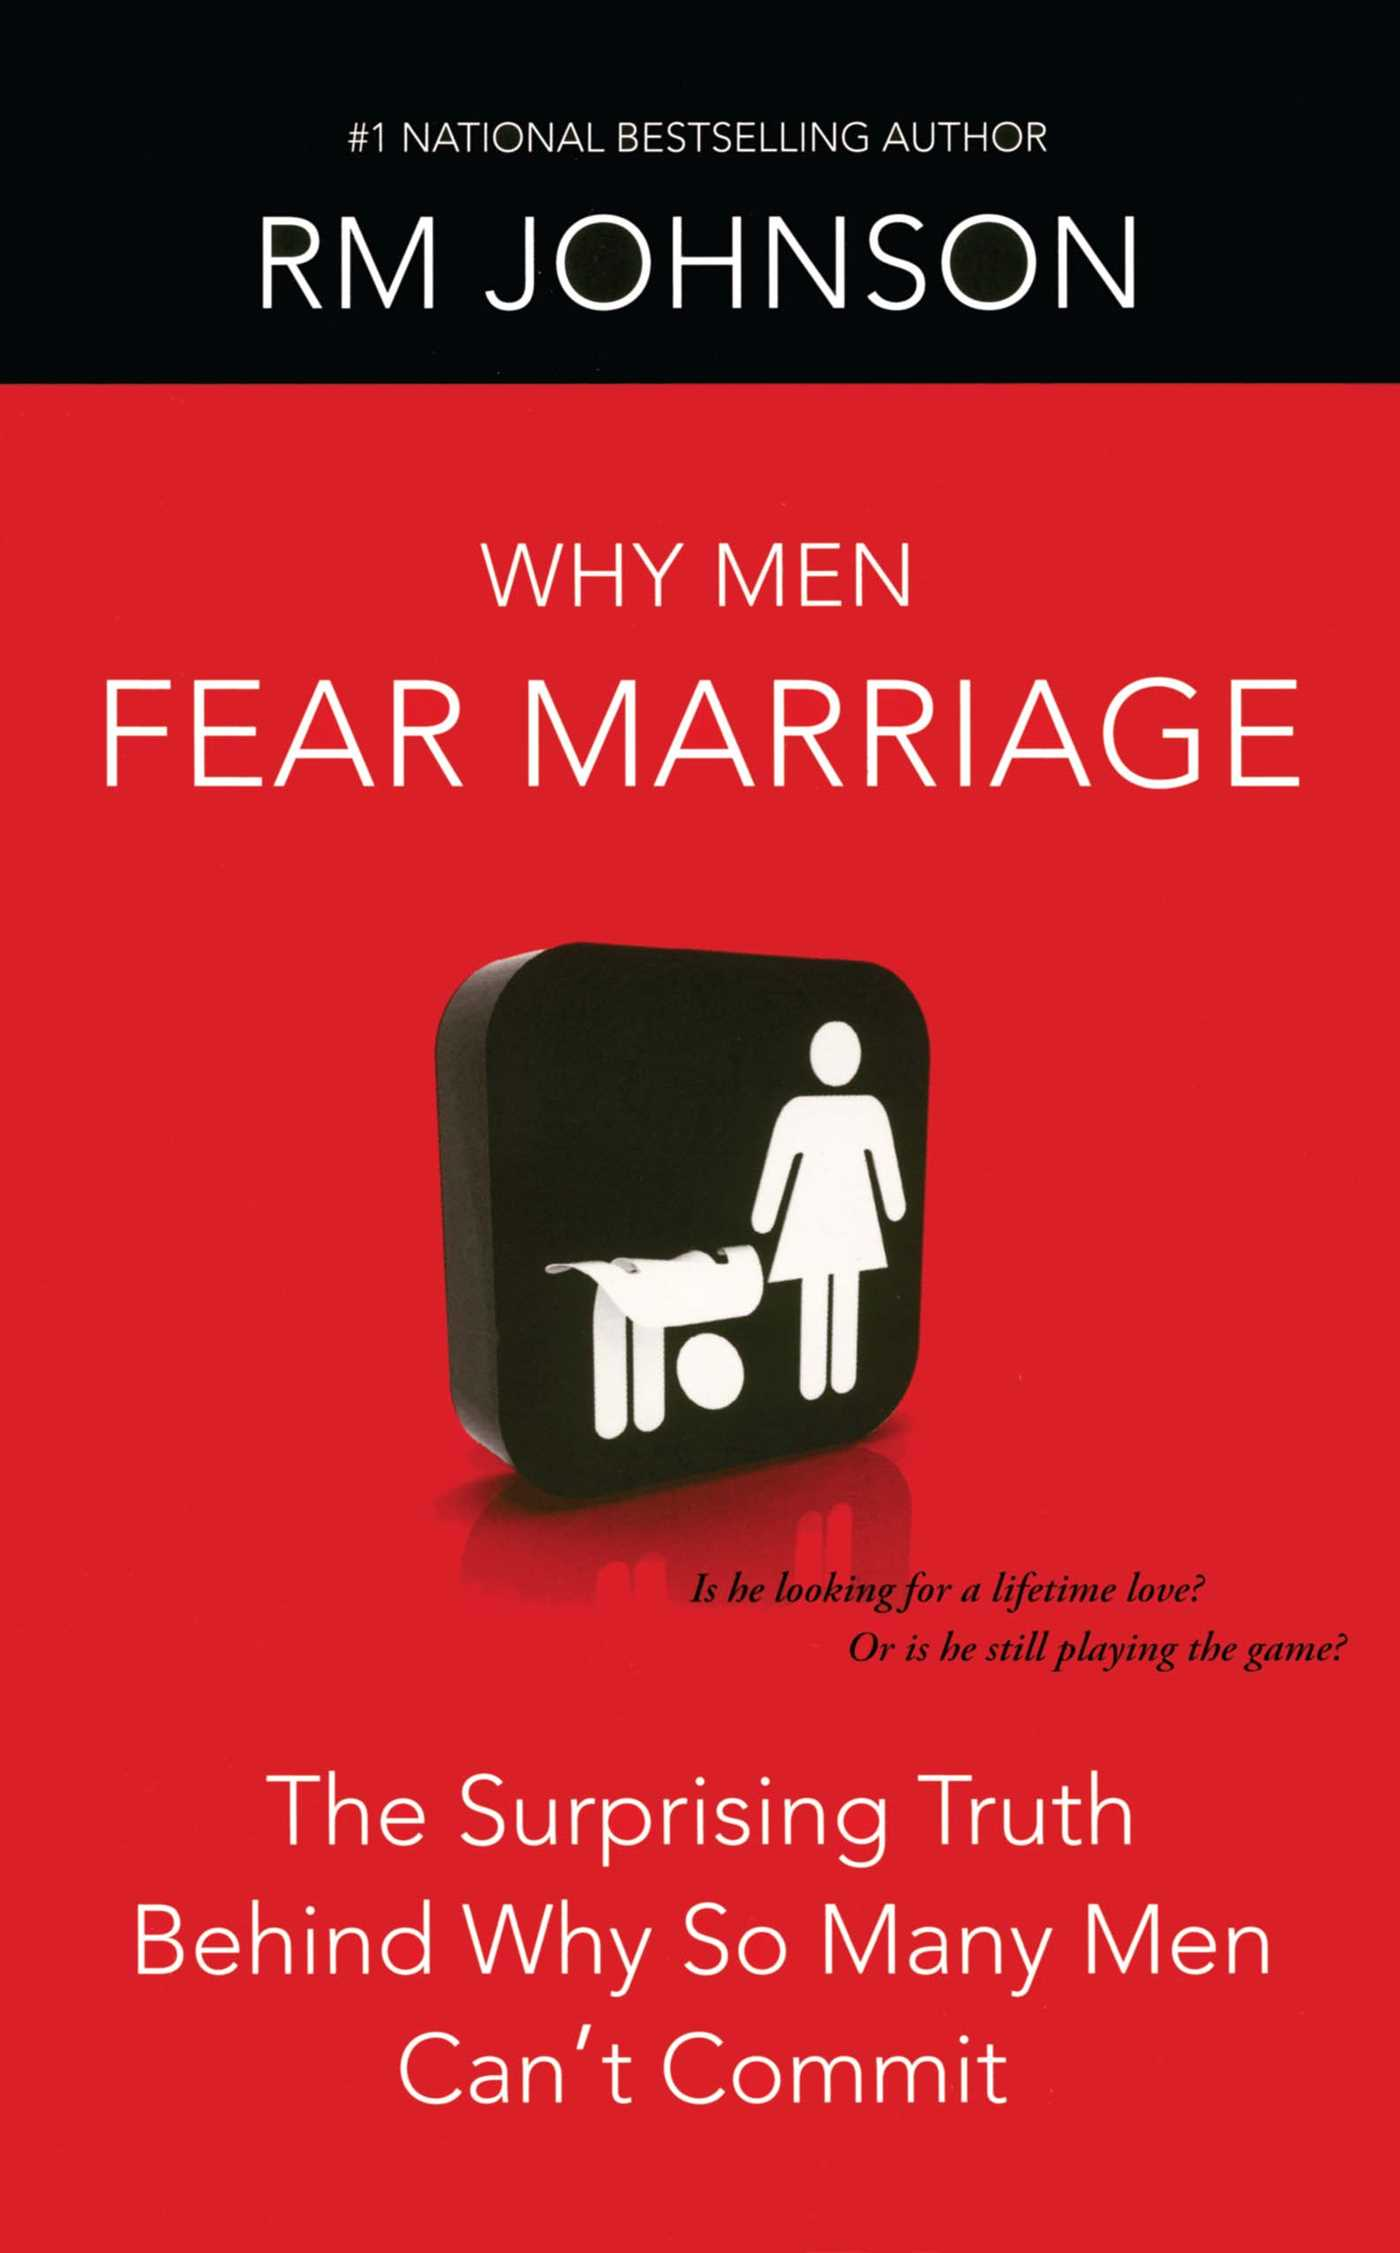 Why-men-fear-marriage-9781439101506_hr